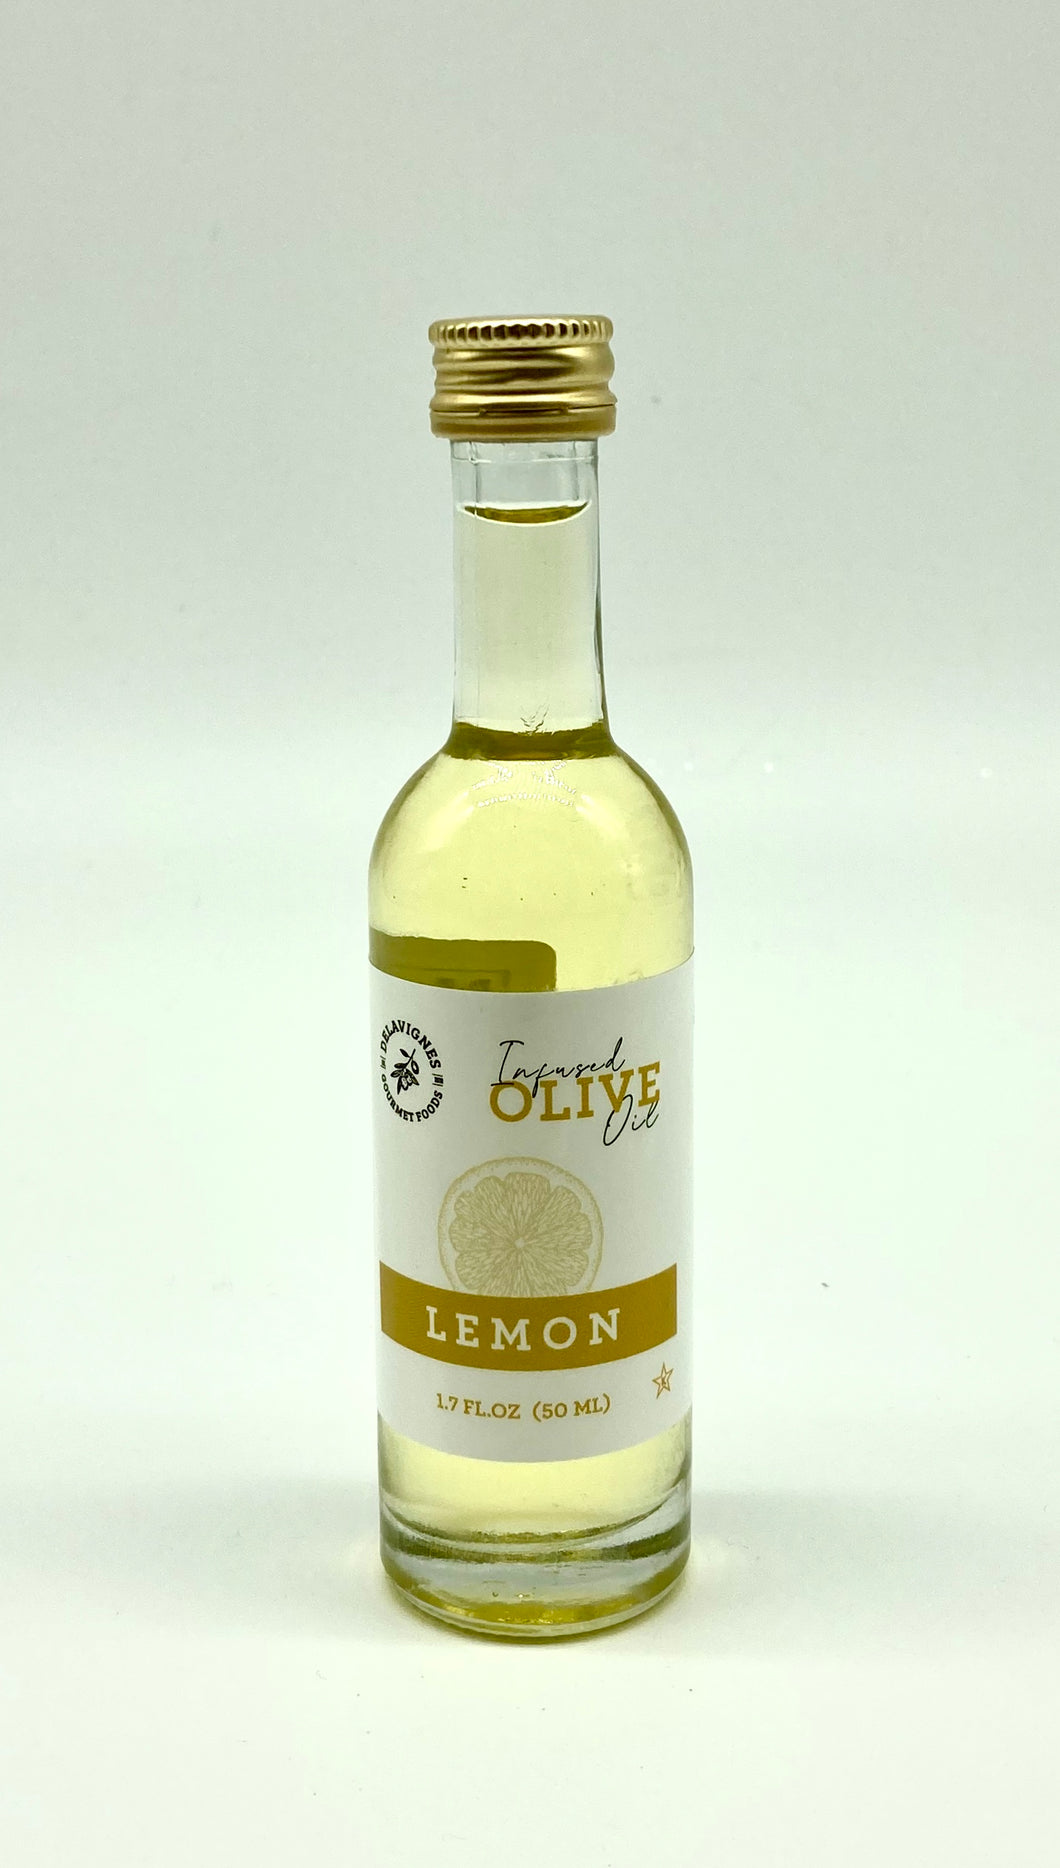 Lemon Infused Olive Oil 1.75oz